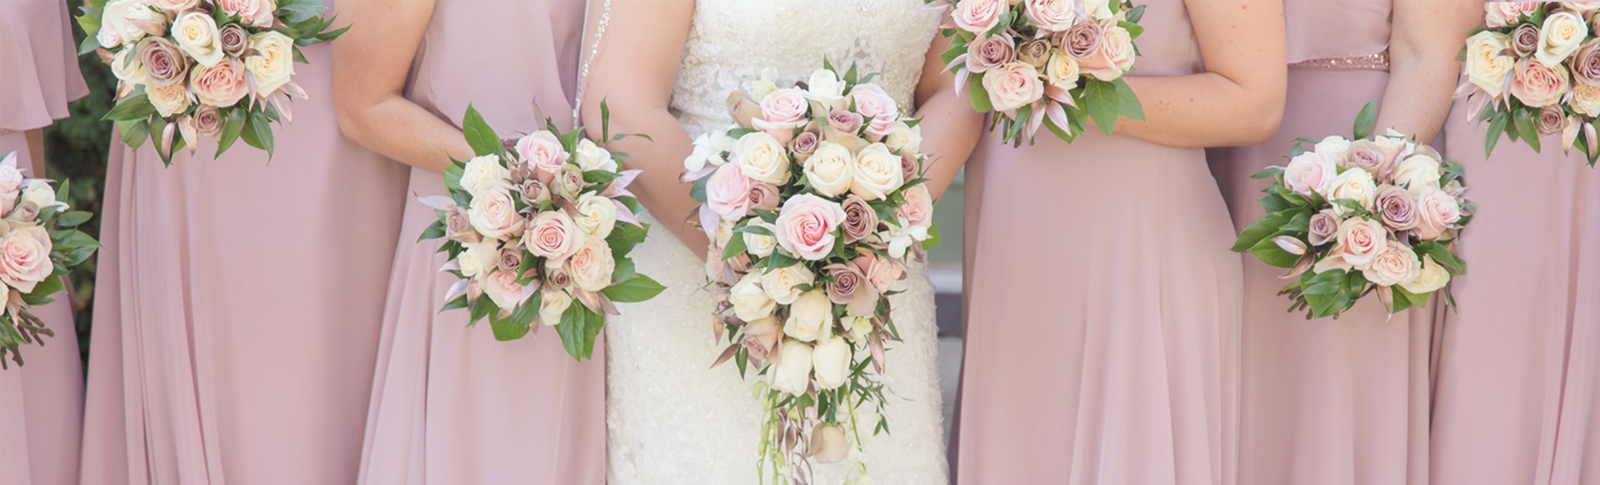 bouquets & pink